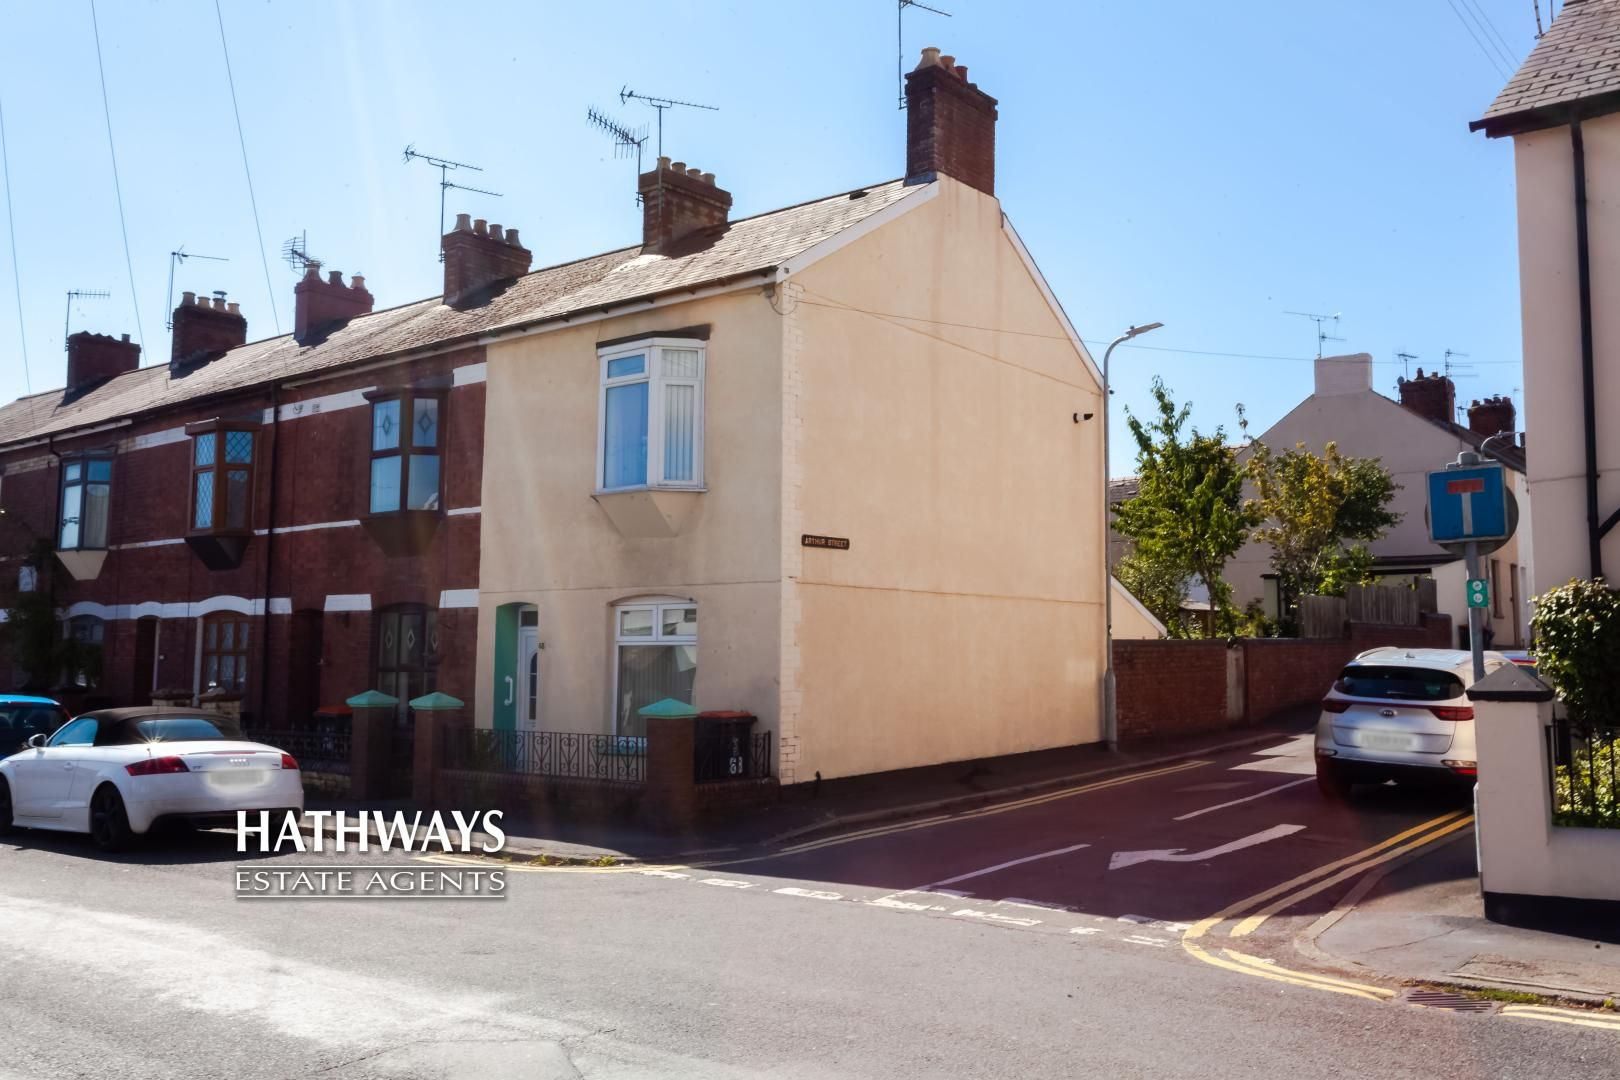 3 bed house for sale in Mill Street, NP18